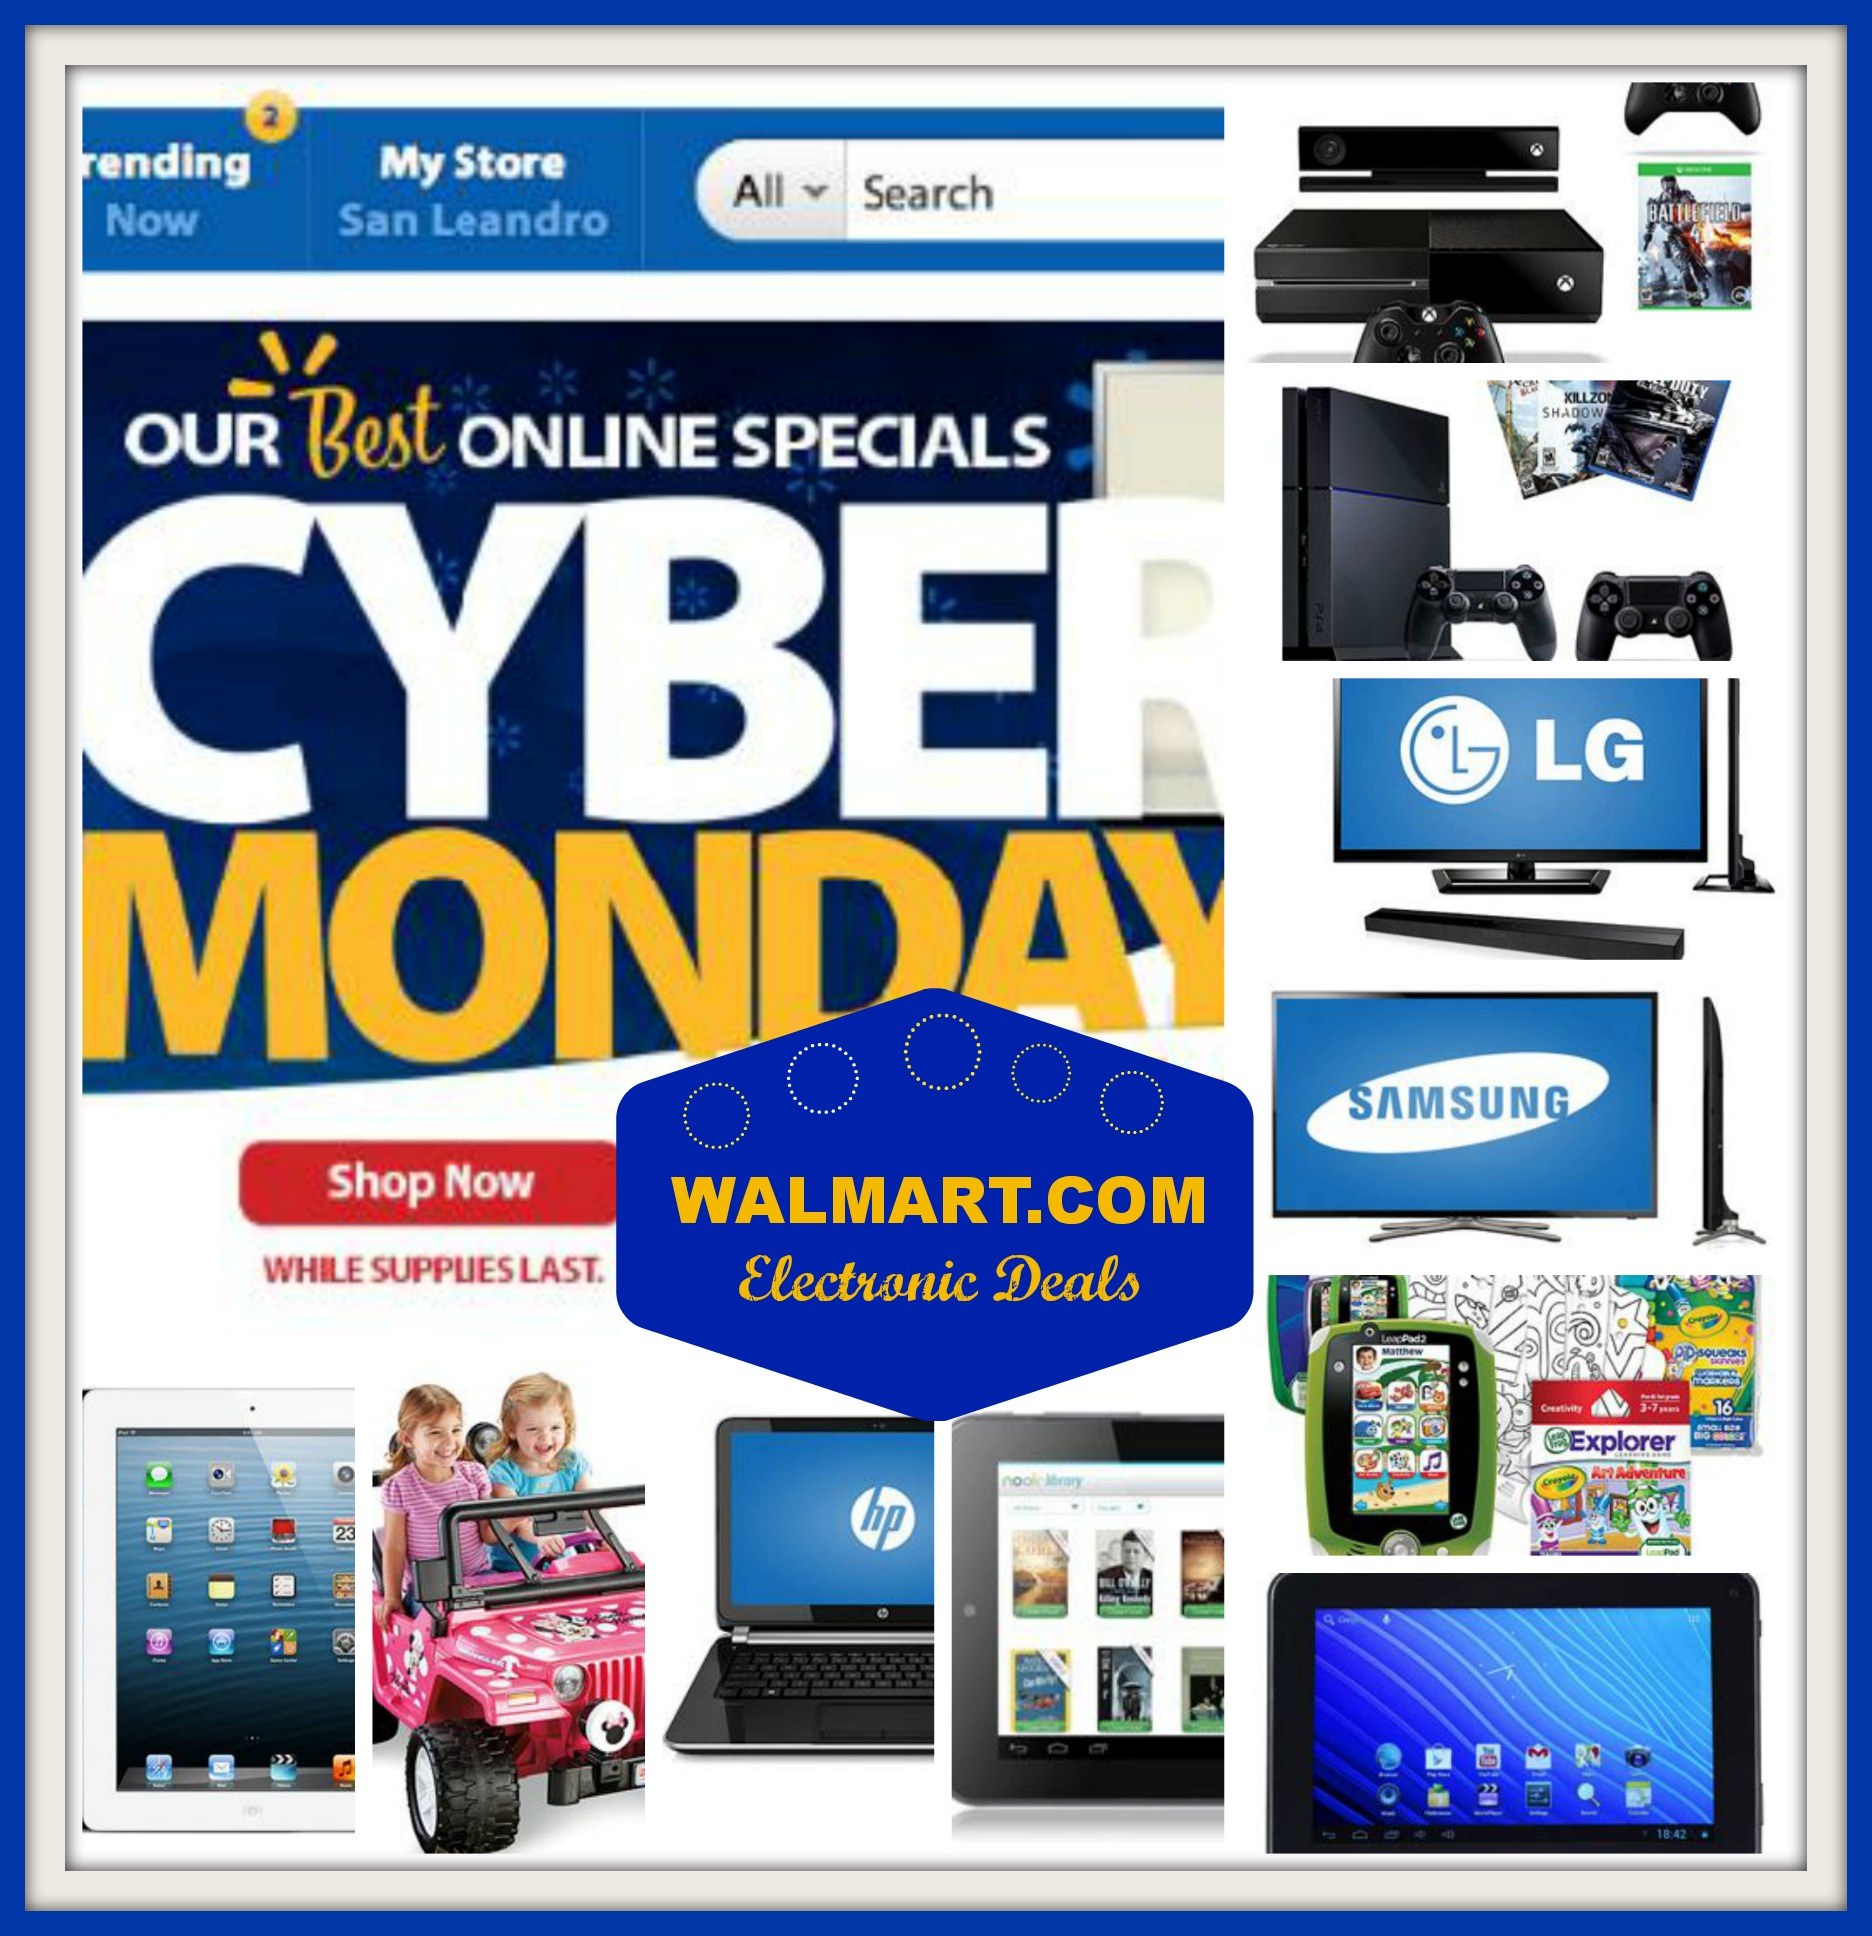 Cyber Monday Deals / Sales Discover huge savings on toys, tech, apparel, small appliances, travel and more on Cyber Monday and throughout Cyber Week. Stay abreast of the hottest deals and sitewide sales with insights and updates from our Cyber Monday specialists.